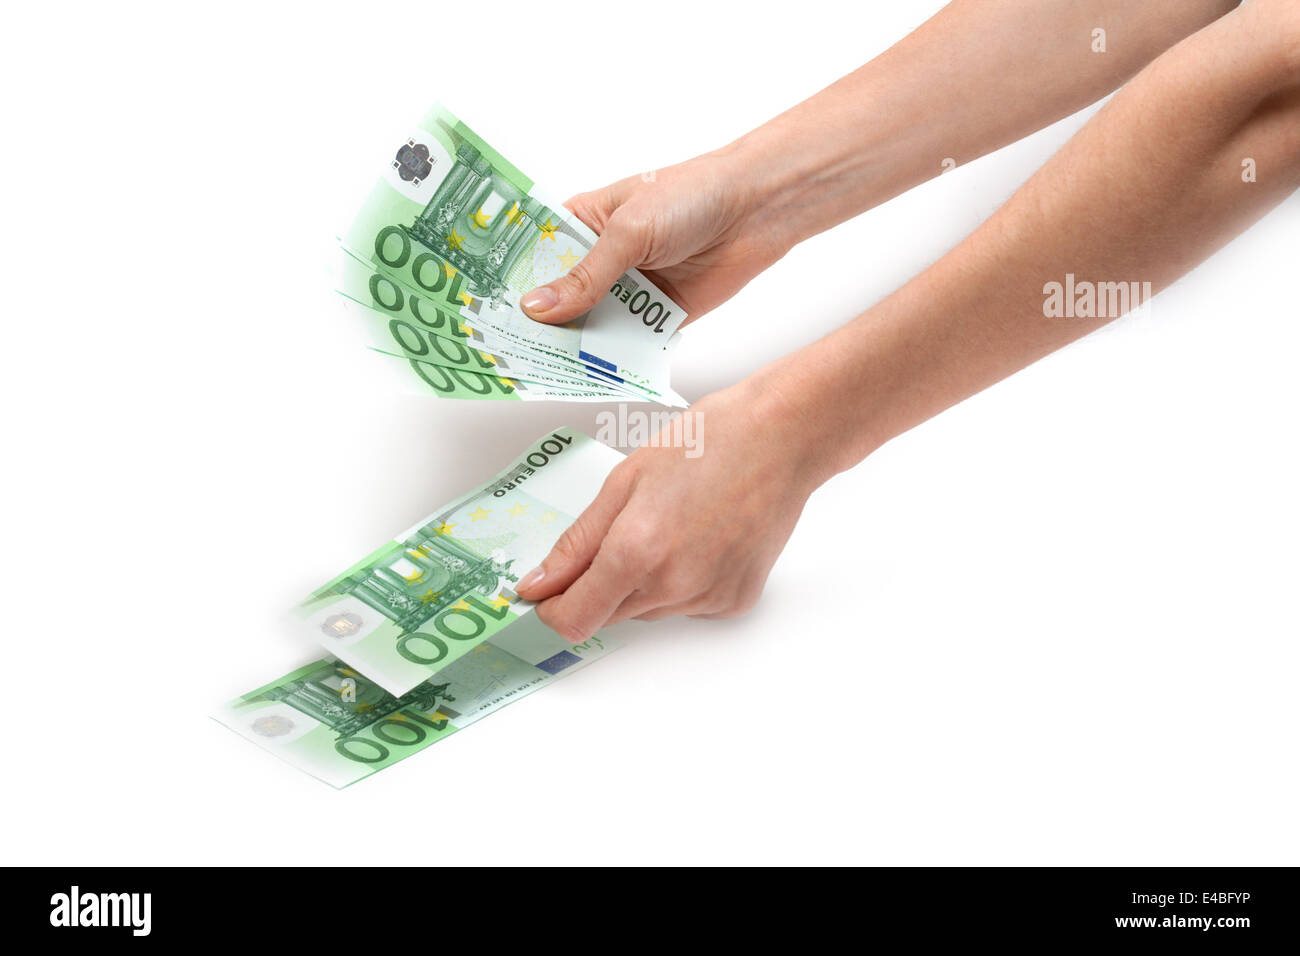 Hands considers euro - Stock Image